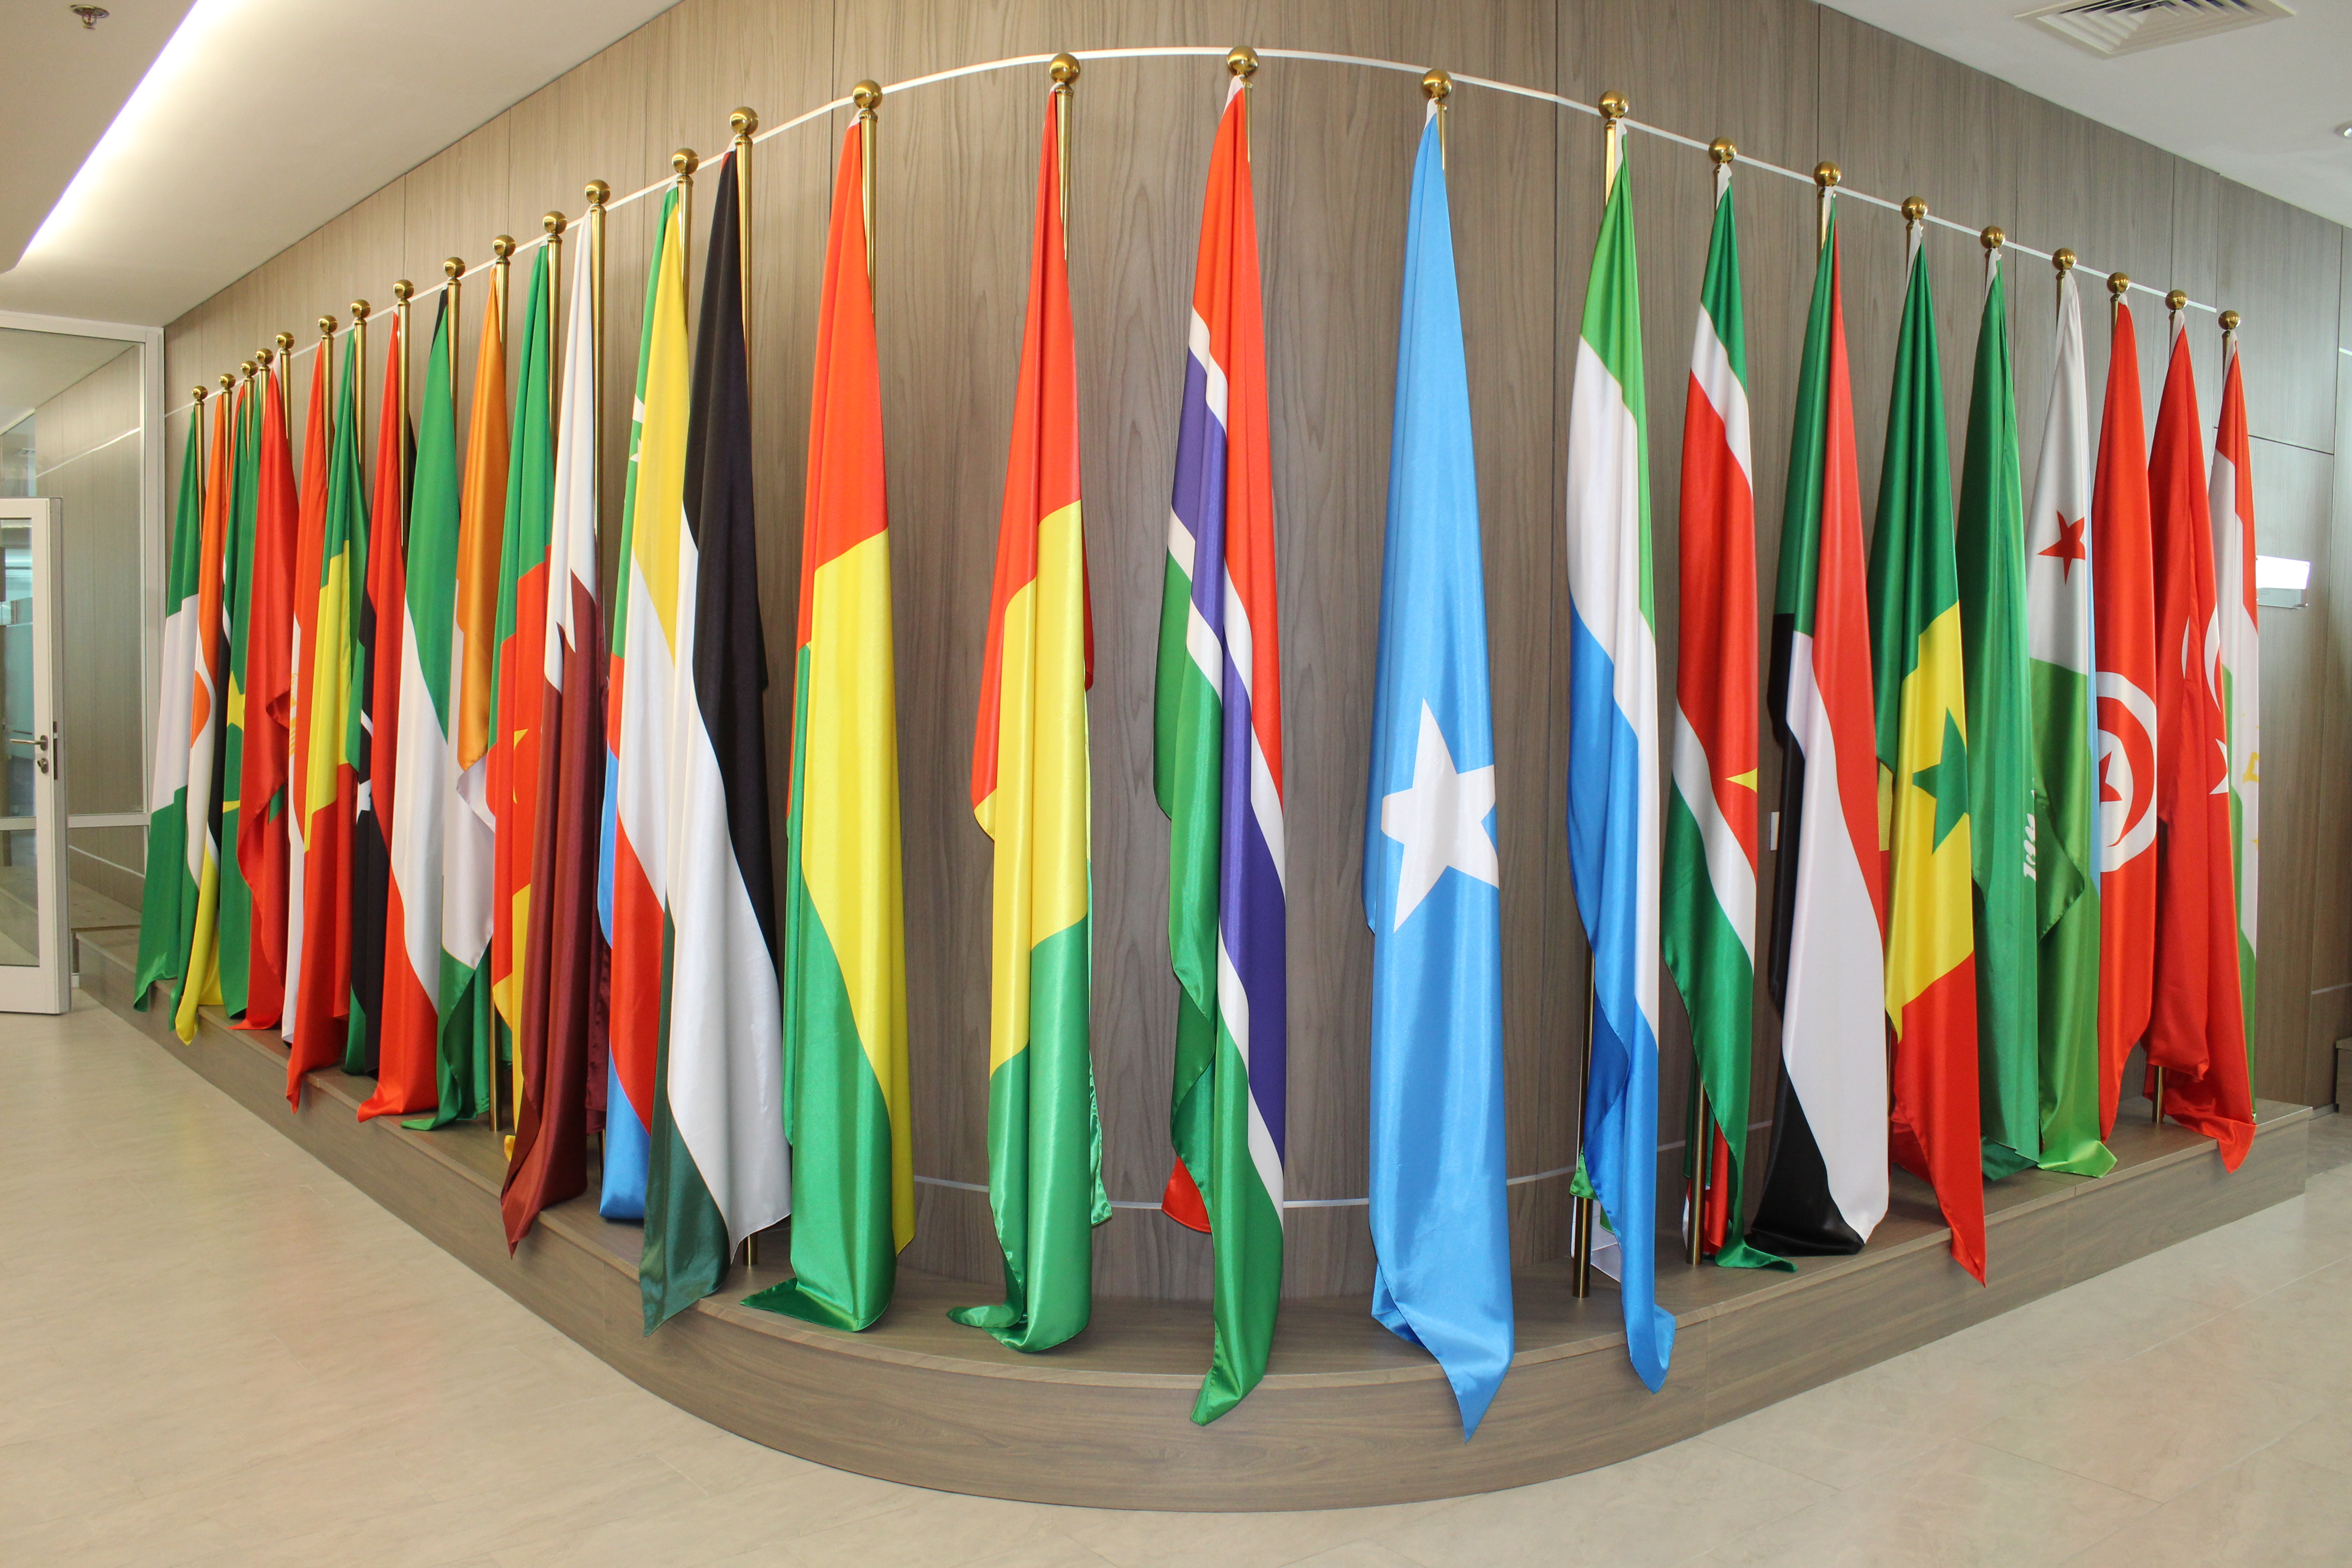 Flags of the member states of the Islamic Organization for Food Security at the Nur Sultan, Kazakhstan, office